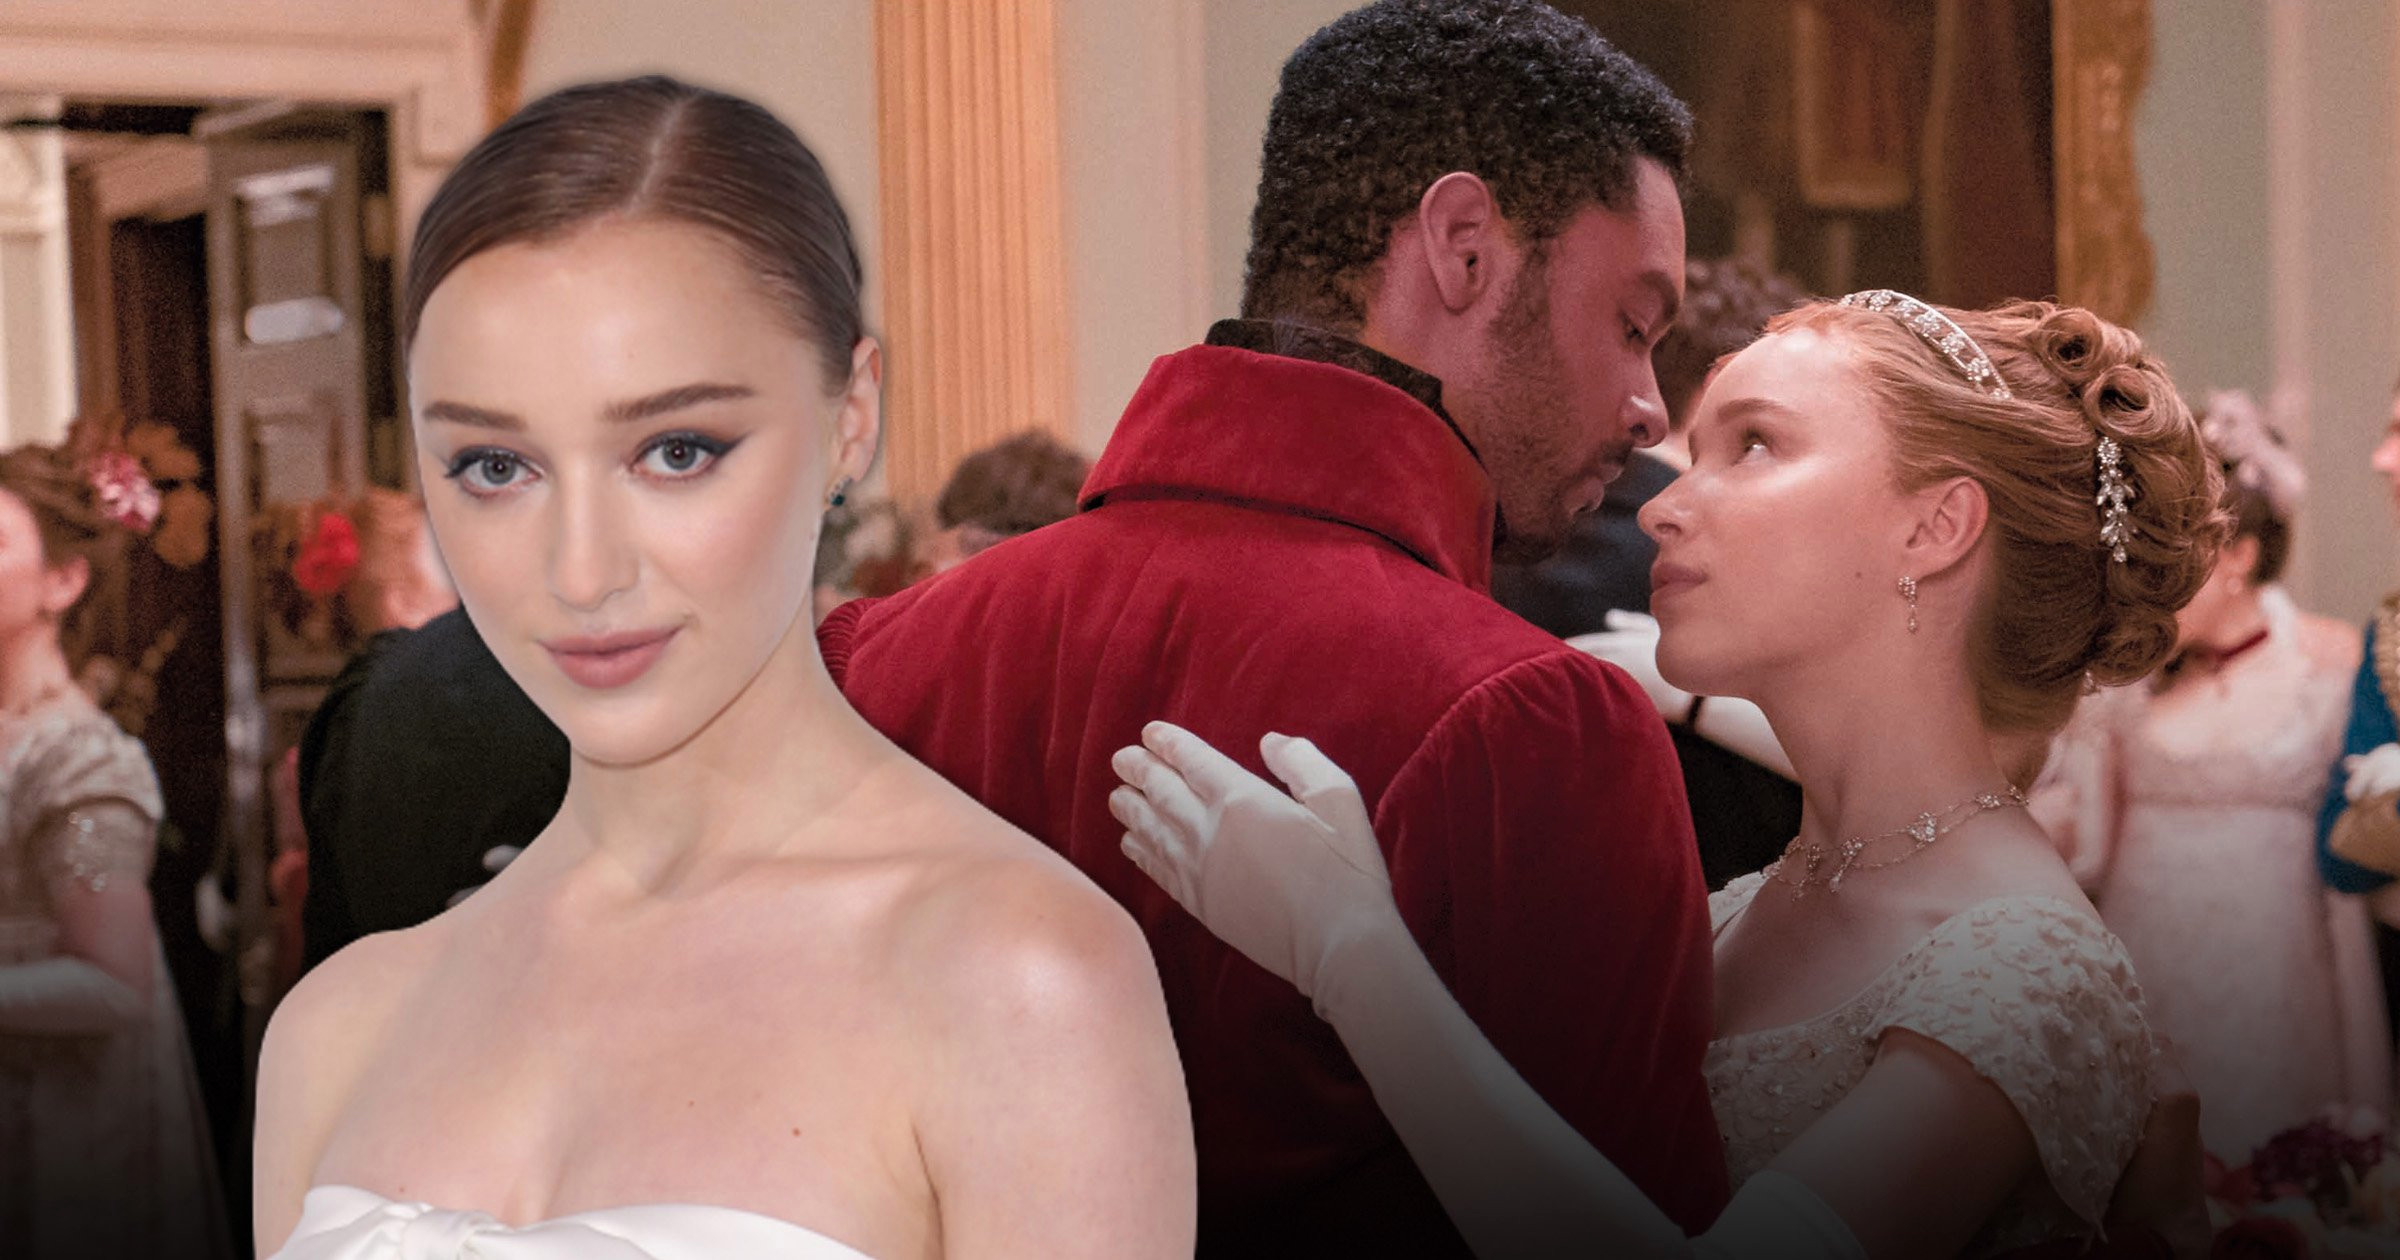 Bridgerton's Phoebe Dynevor denies real-life romance with co-star Regé-Jean Page: 'It would be complicated'